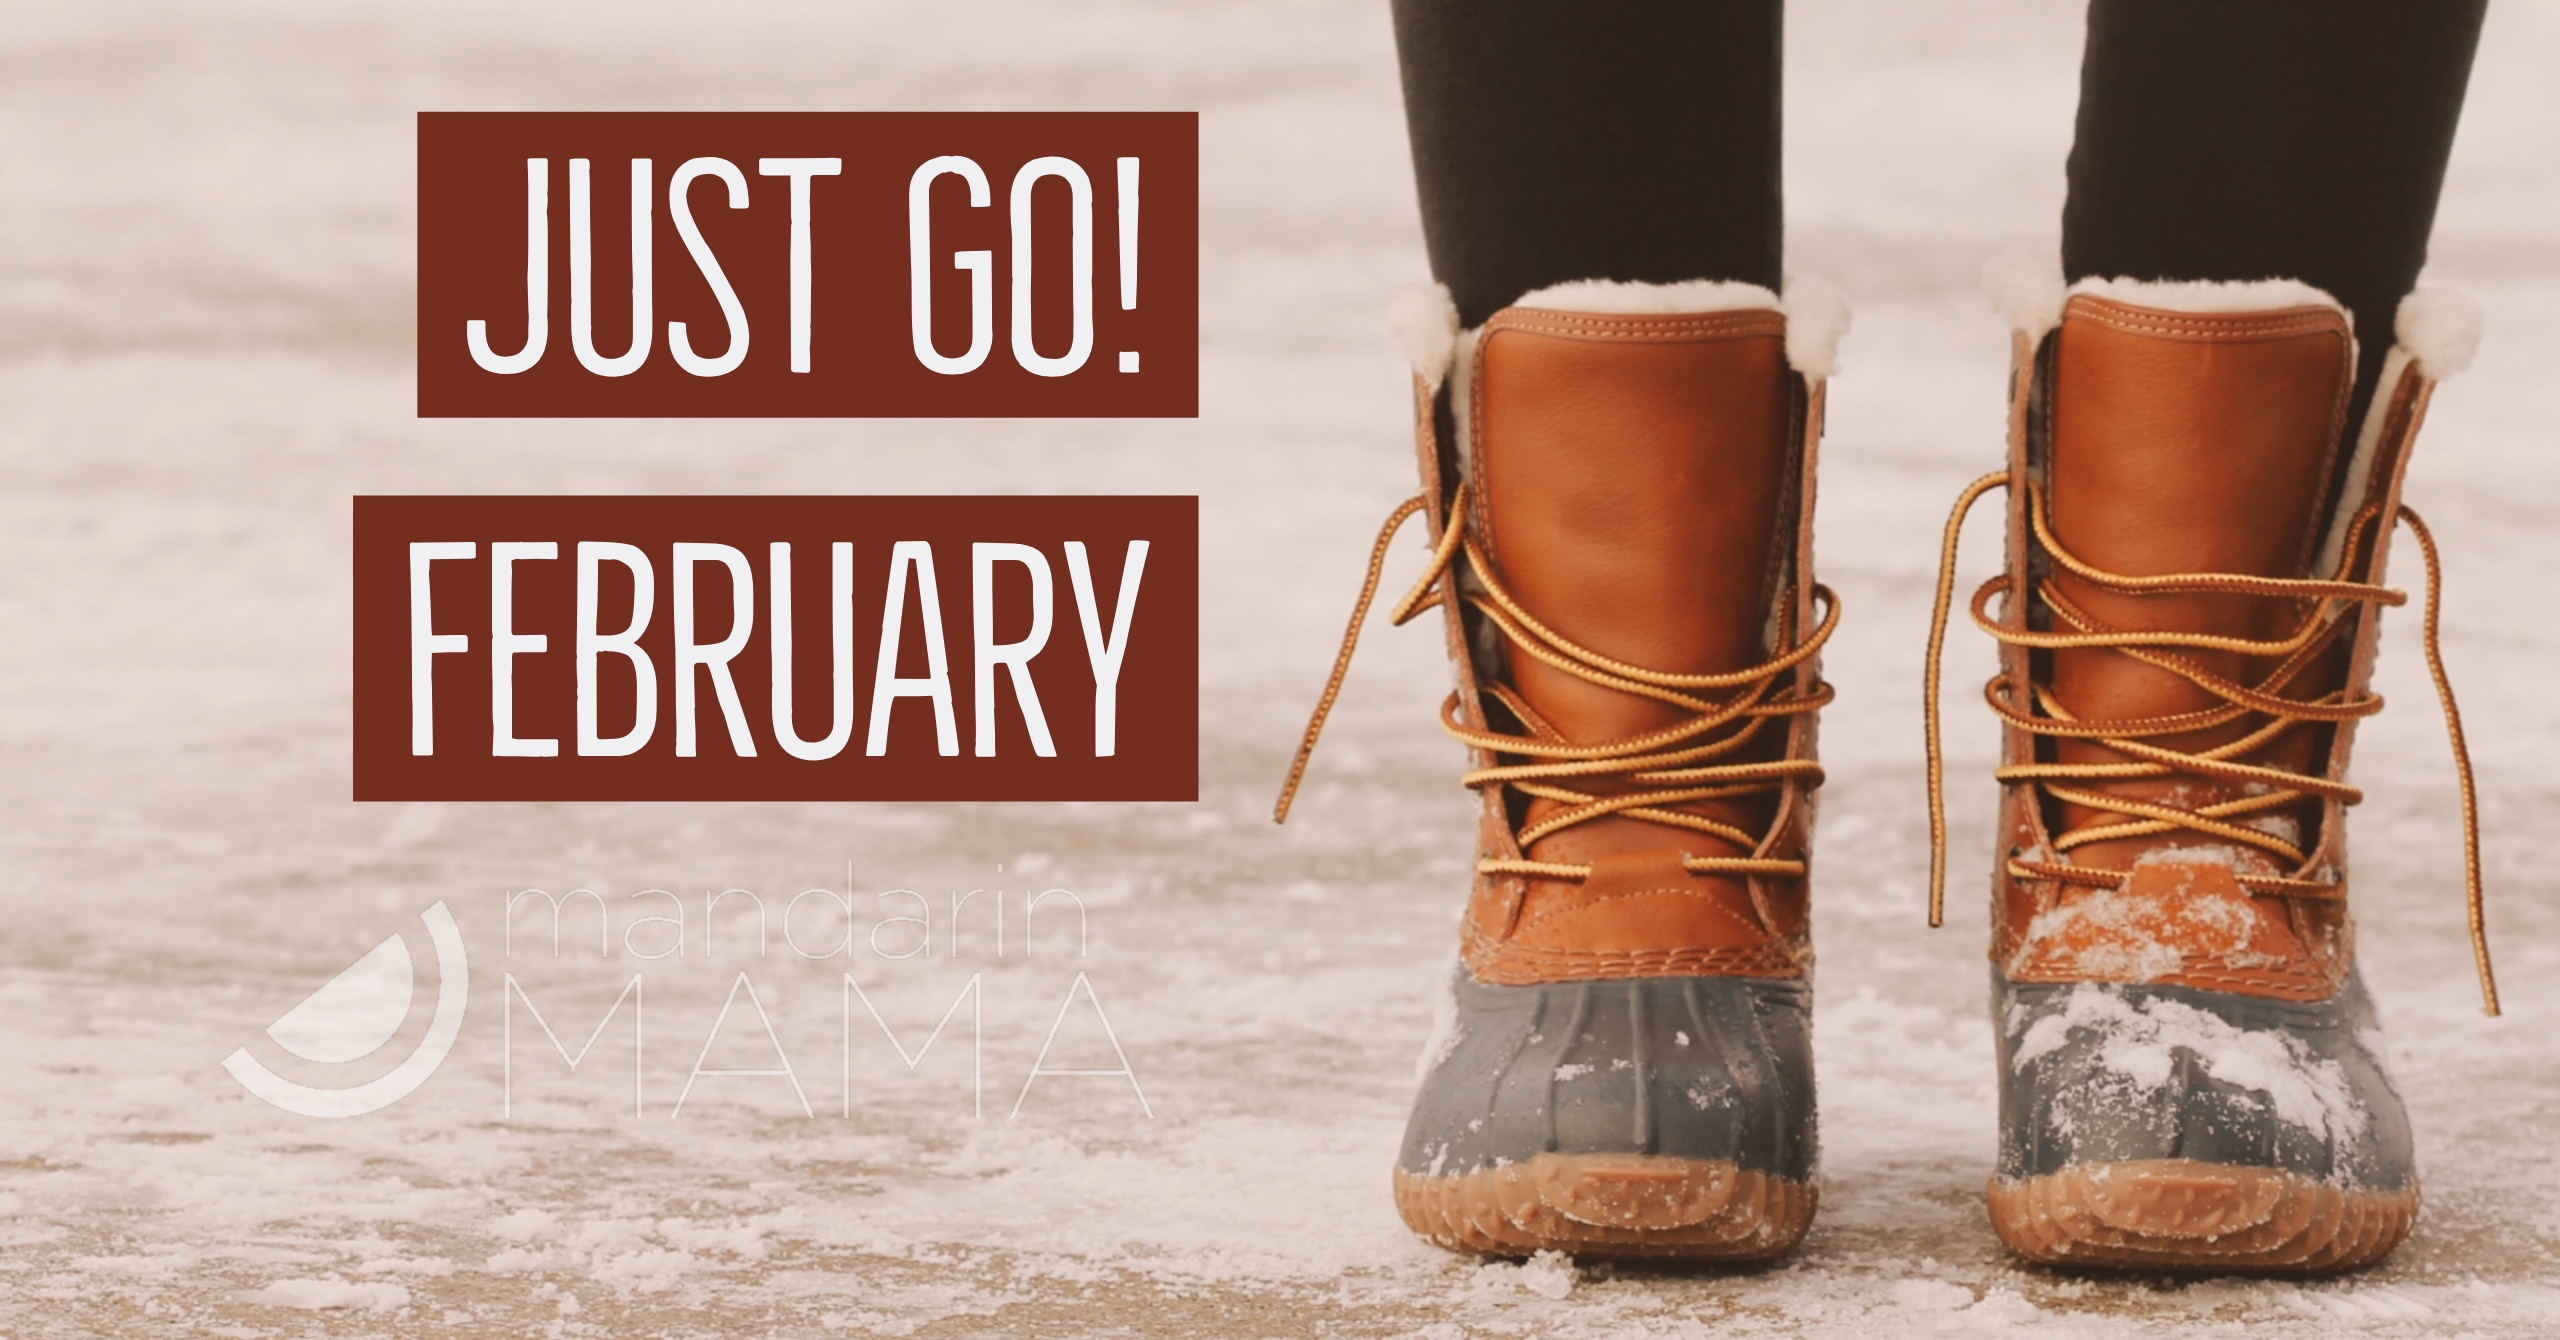 Just Go! February